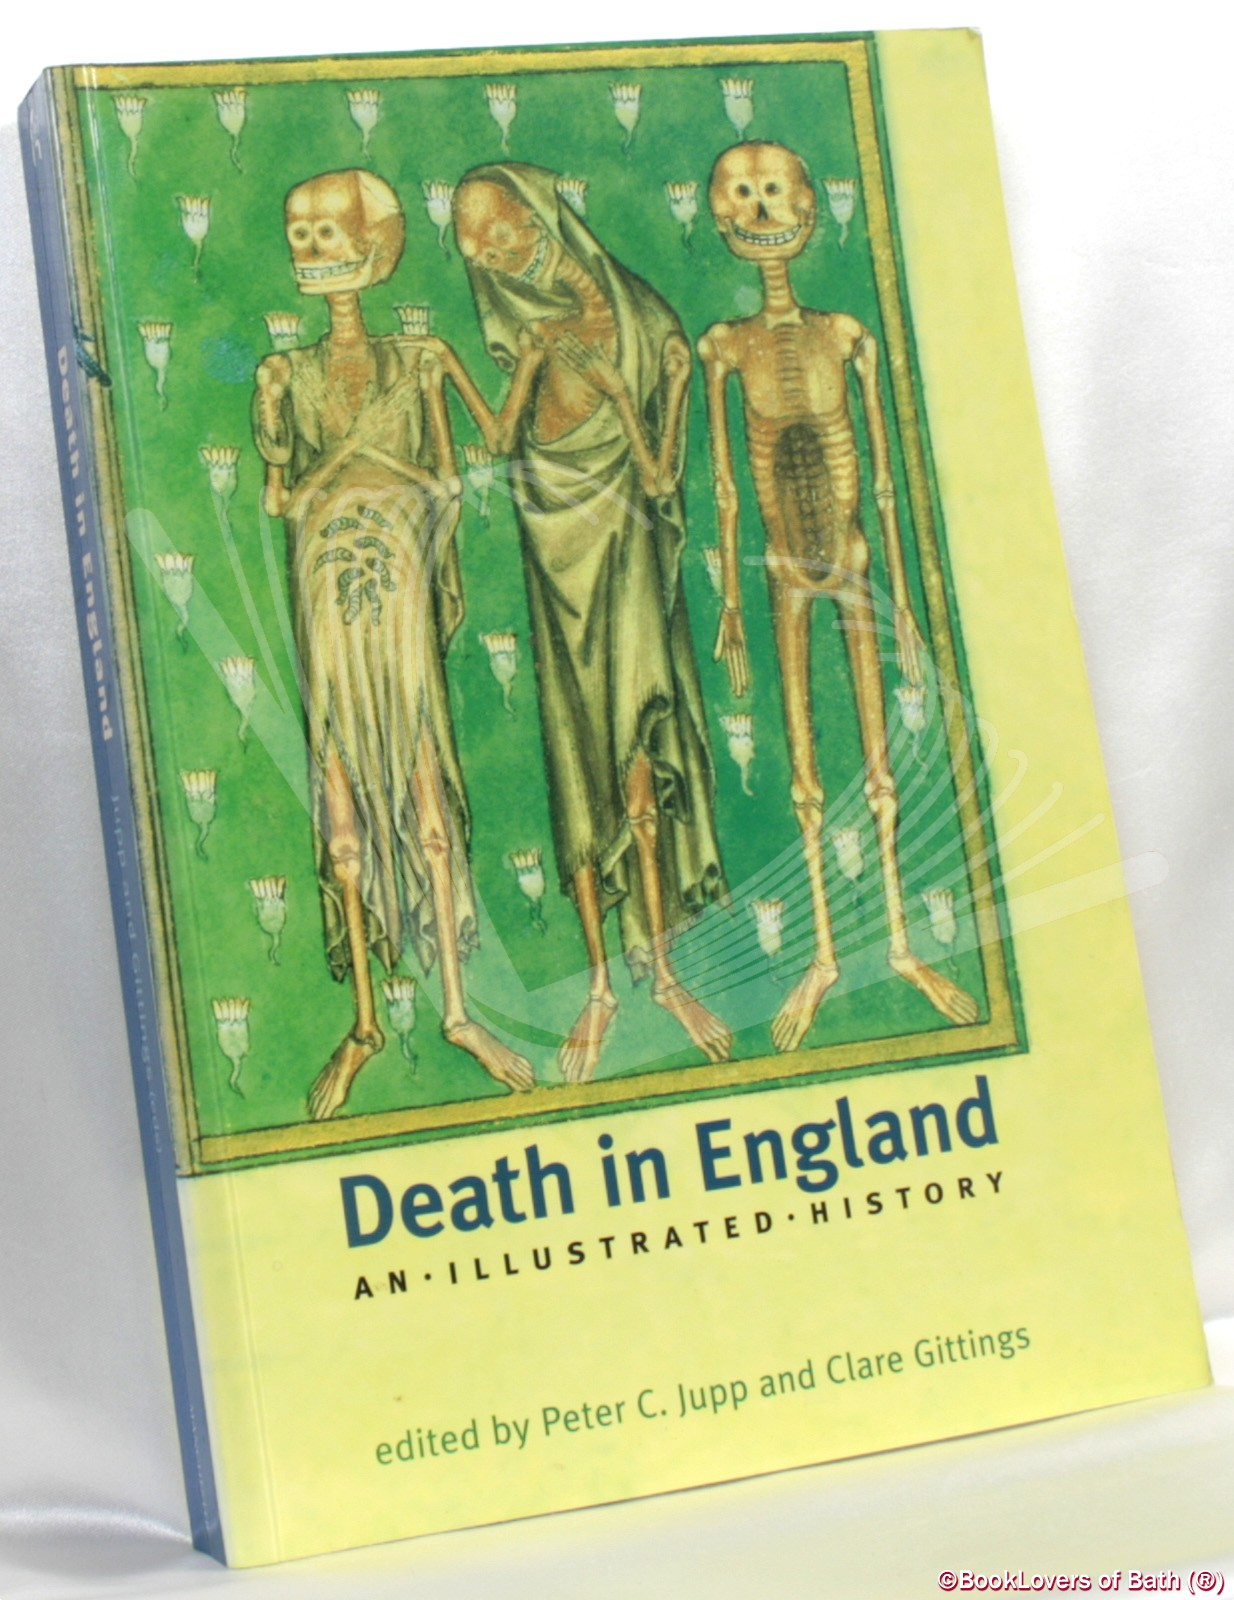 Death in England: An Illustrated History - Edited by Peter Jupp & Clare Gittings